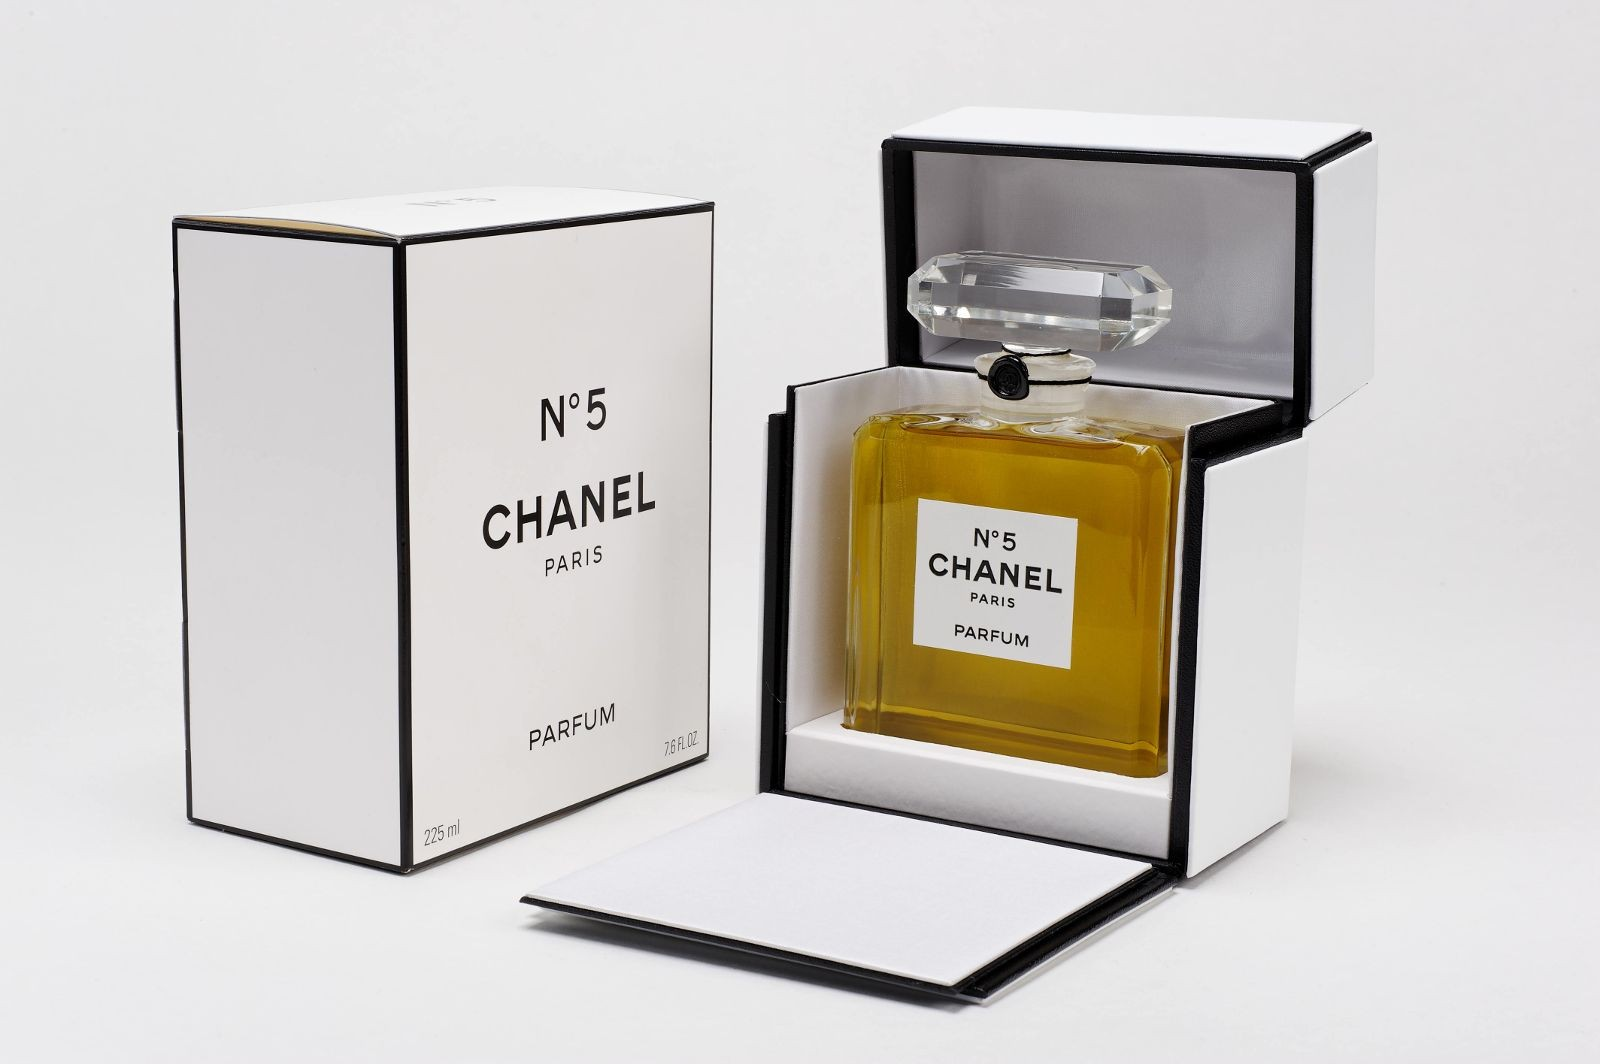 Chanel N5 Flacon De Parfum De 225ml Parfum Dorigine